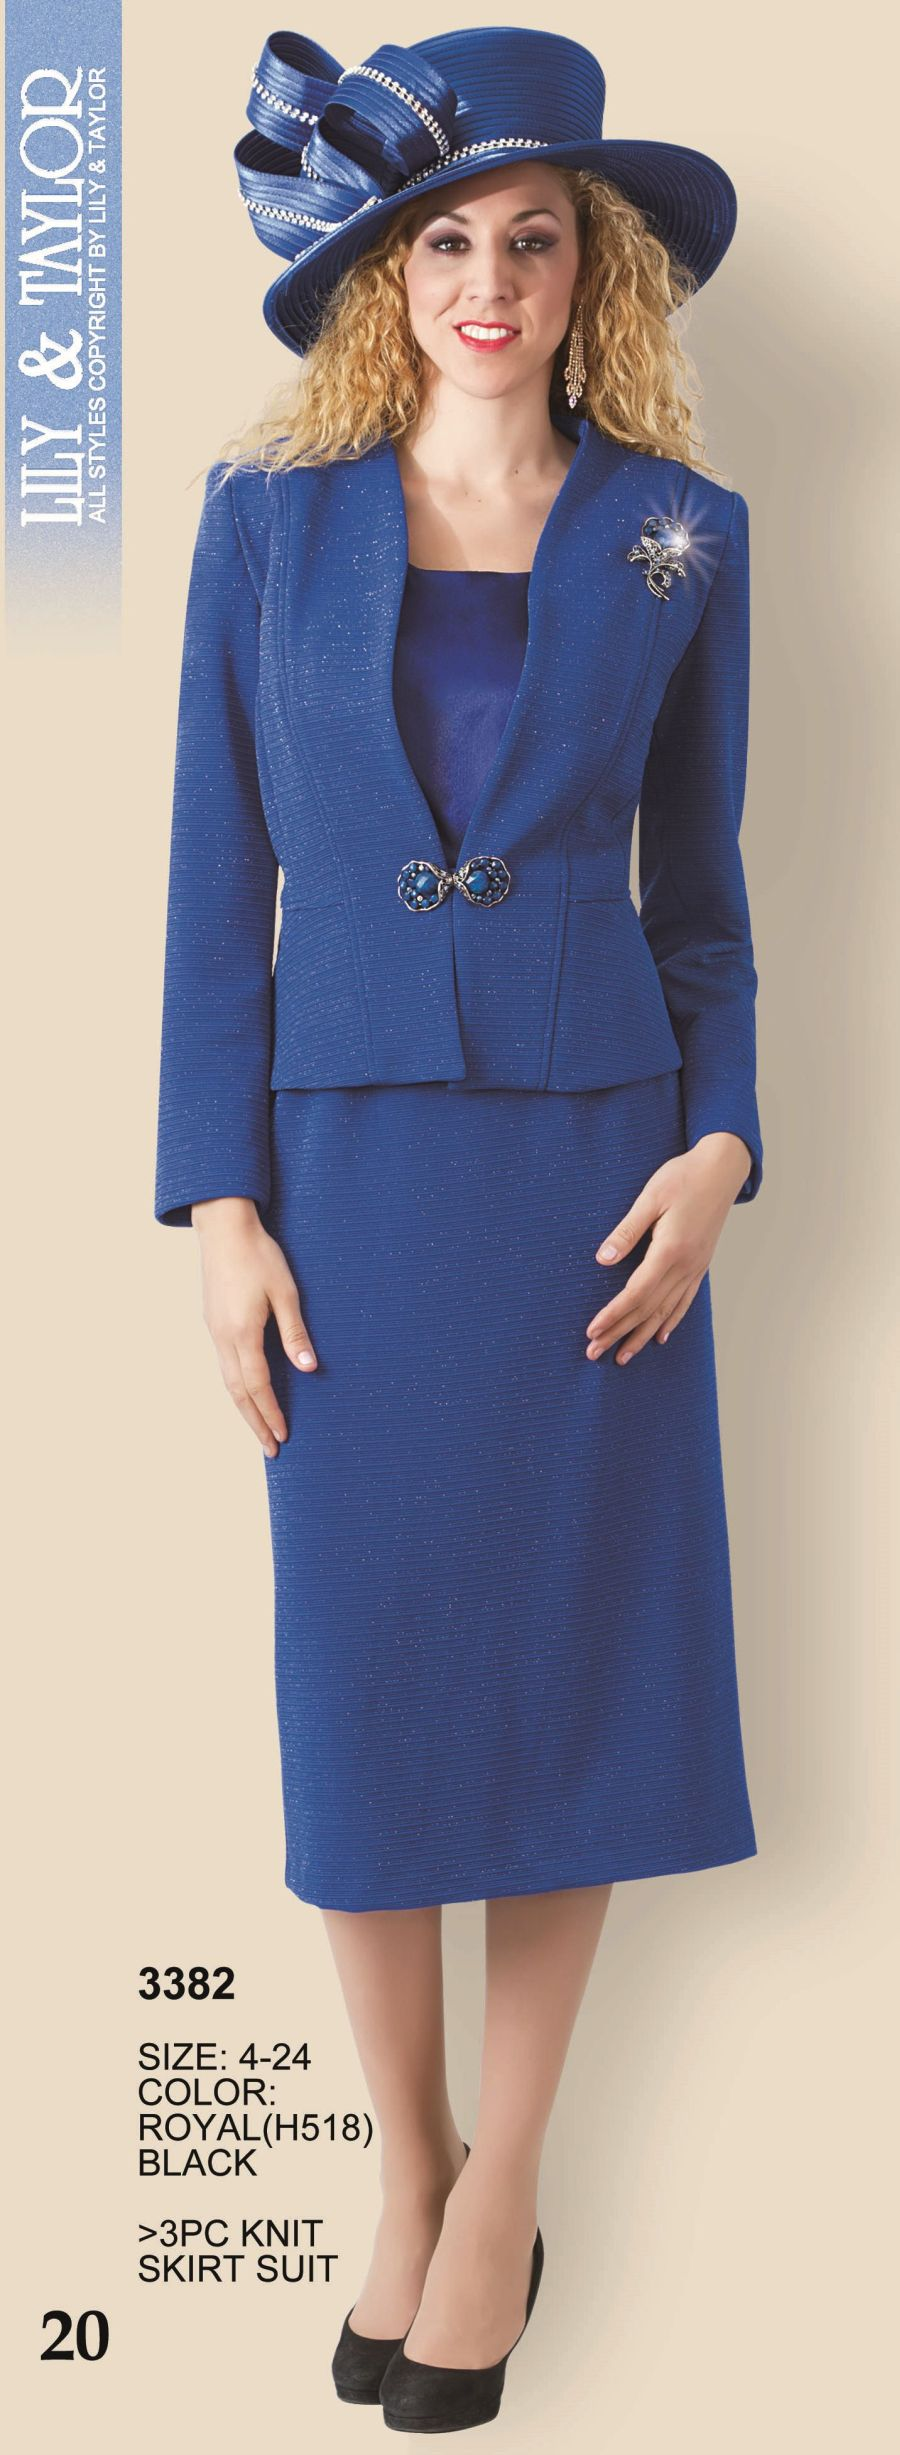 Lily And Taylor 3382 Womens 3pc Knit Church Suit French